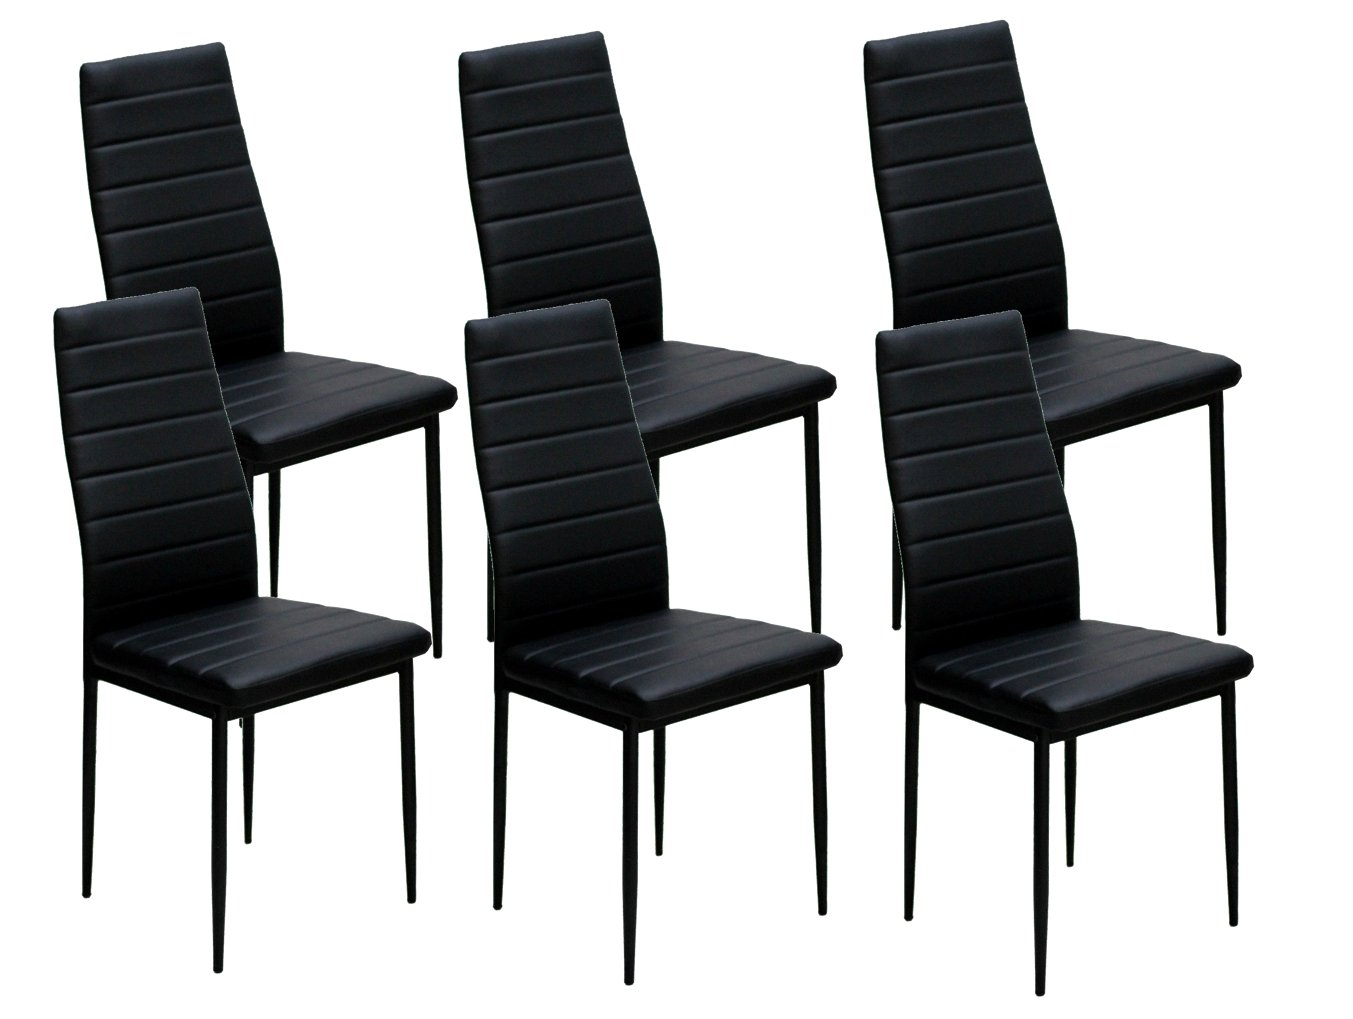 IDS Online 6 PCS Set Modern Style PU Leather Dining Side Chair with Foot Pad Black by IDS Online (Image #1)